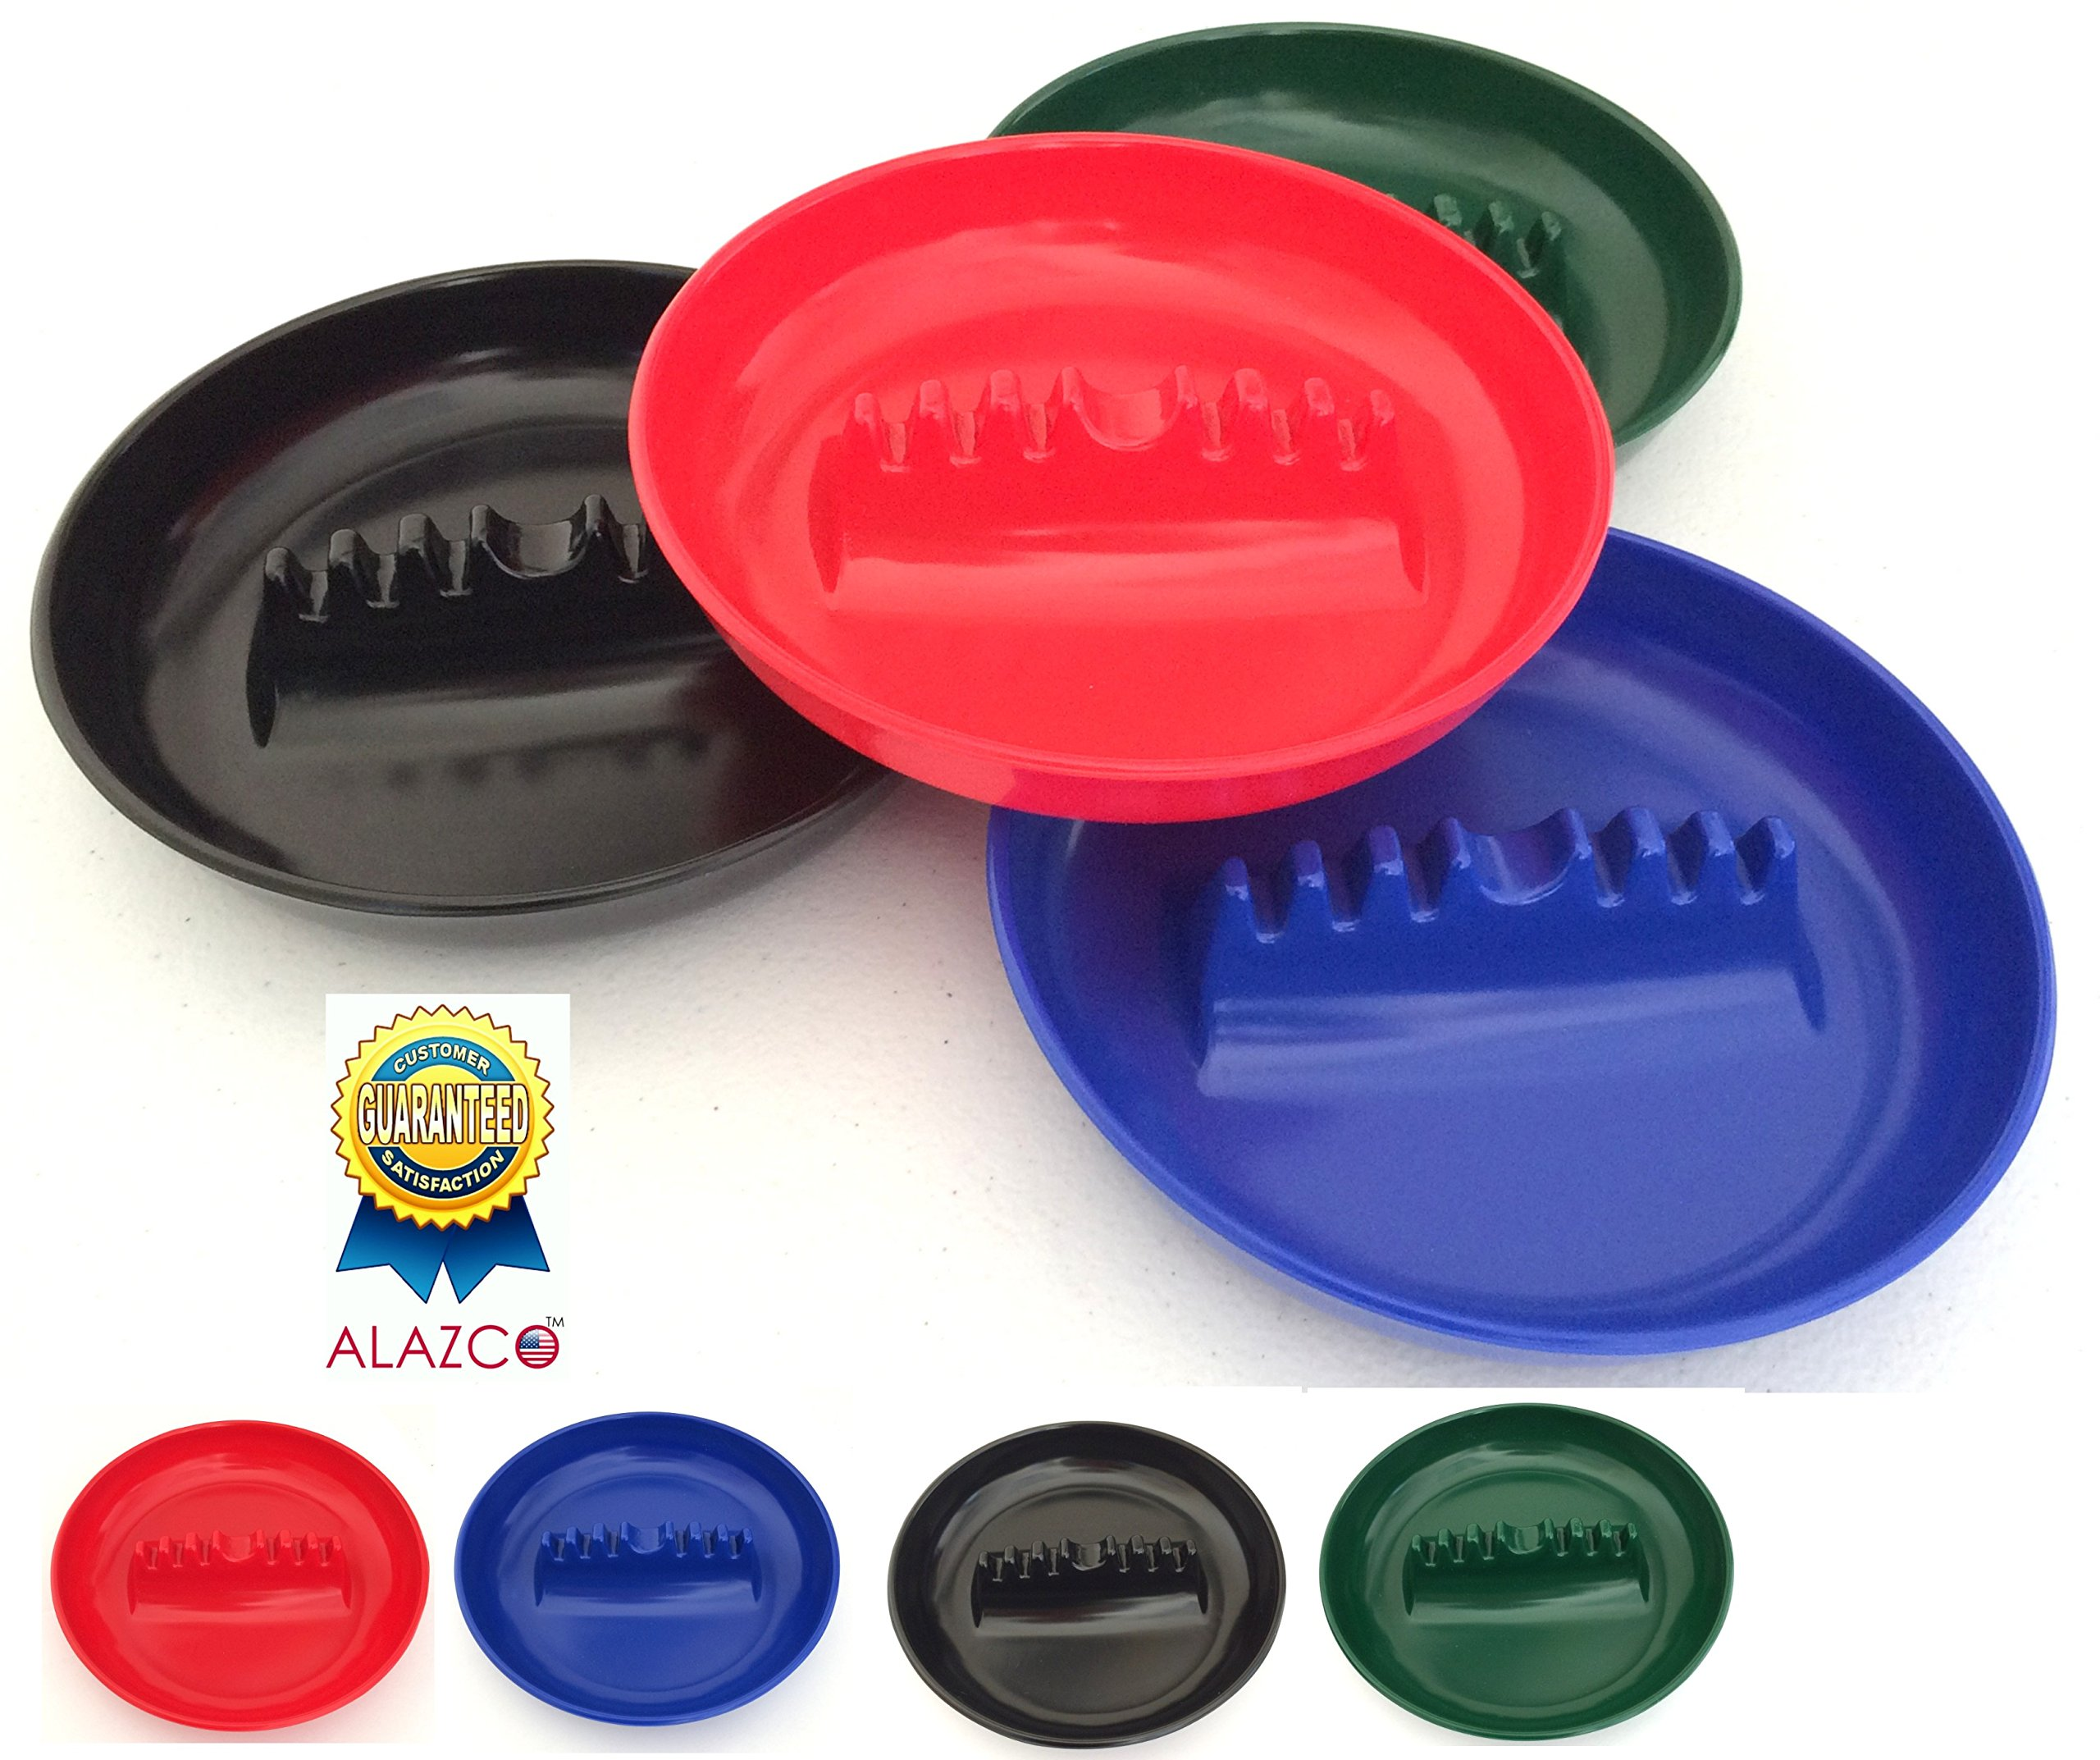 Set of 4 ALAZCO Round Plastic Cigarette Cigar Tabletop Ashtray (Blue, Red, Green & Black in each set) AZ4CAS by ALAZCO